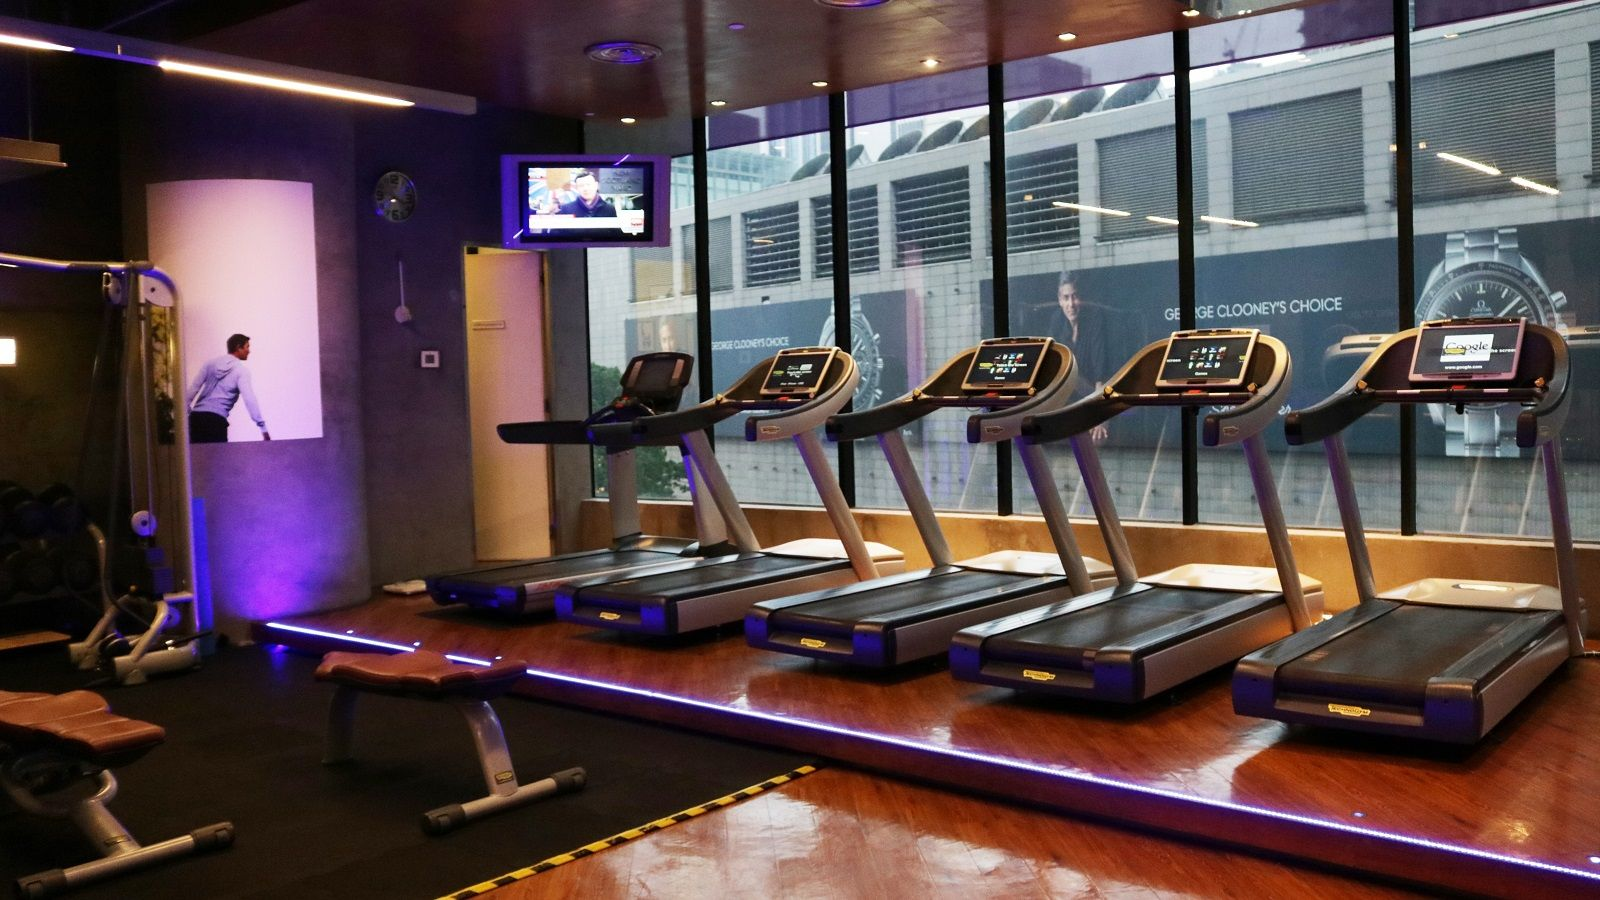 westin workout,fitness centre,westin kl gym,gym in kl